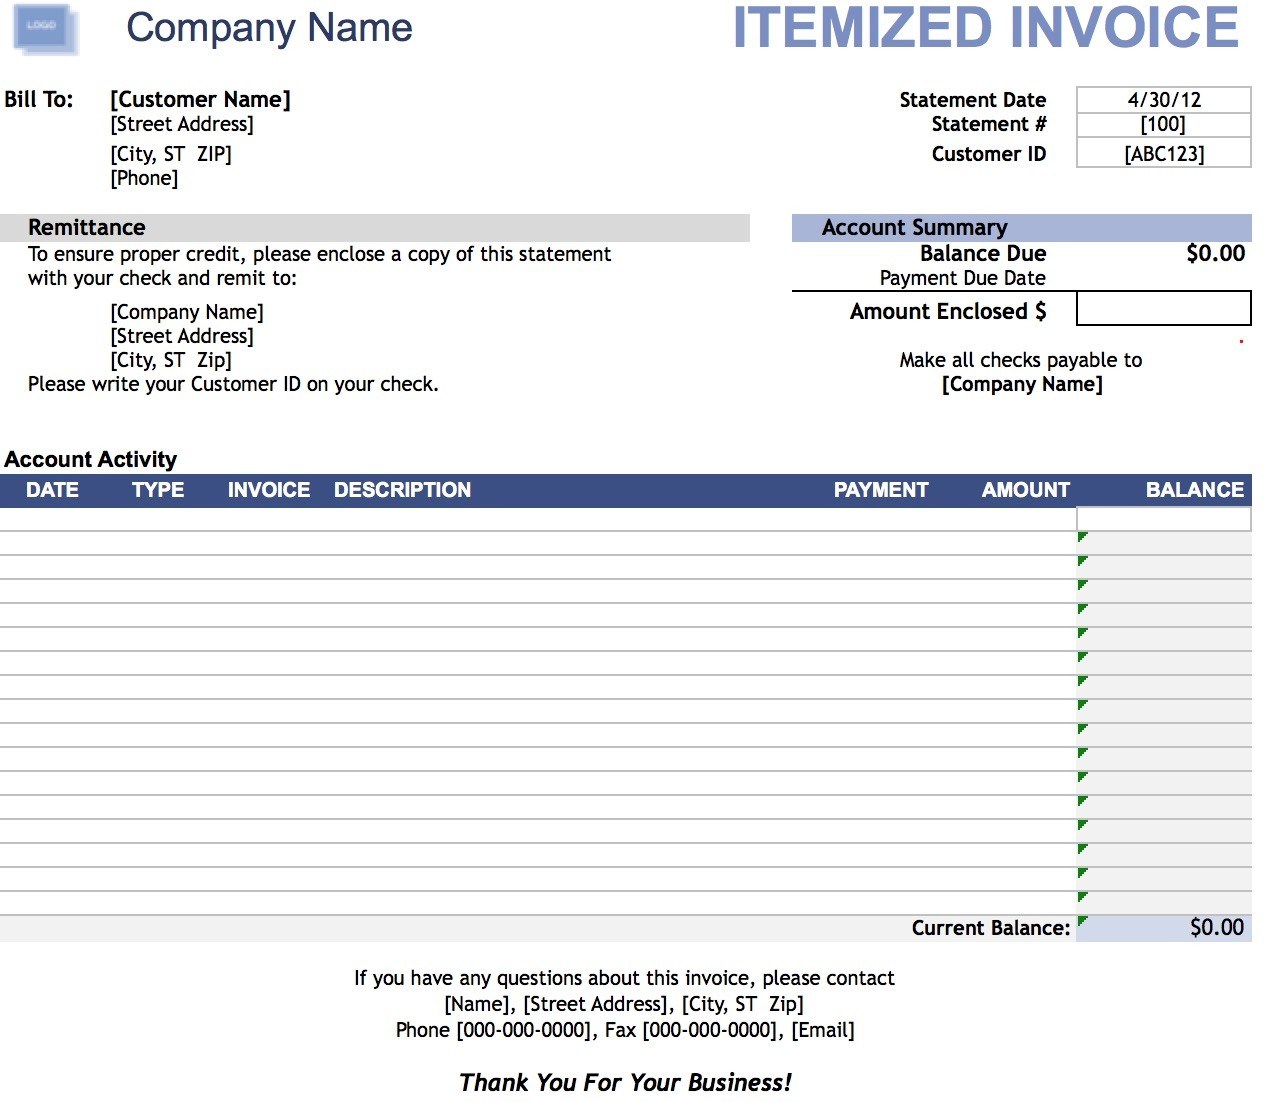 Itemized Invoice Template Invoice Example